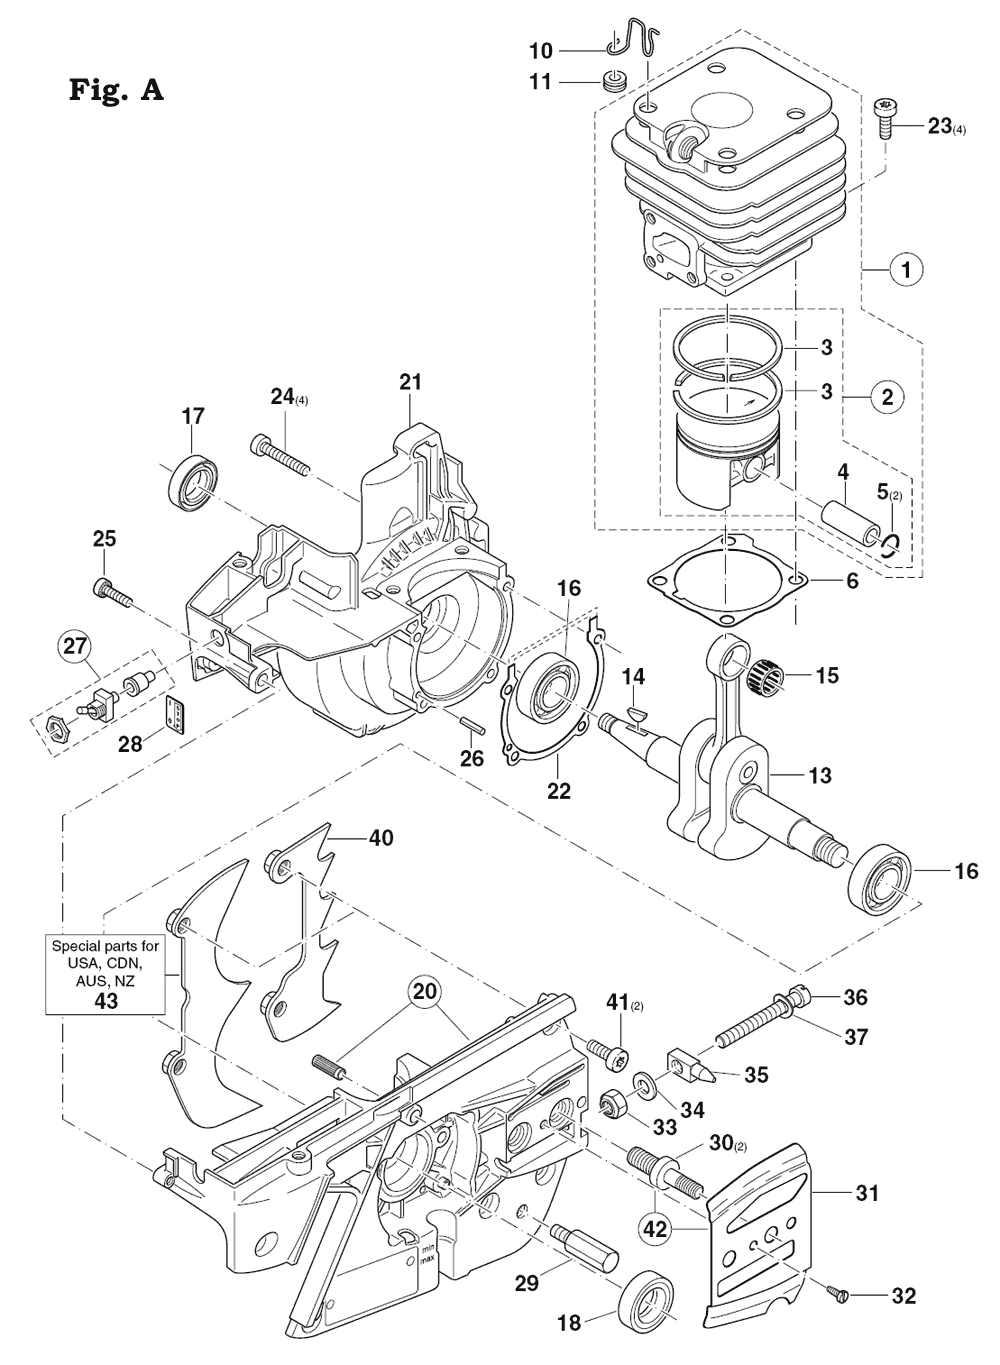 Stihl 015 Chainsaw Parts Diagram Search For Wiring Diagrams Addition On Echo Buy Makita Ps 6800i Replacement Tool L Saw Pole